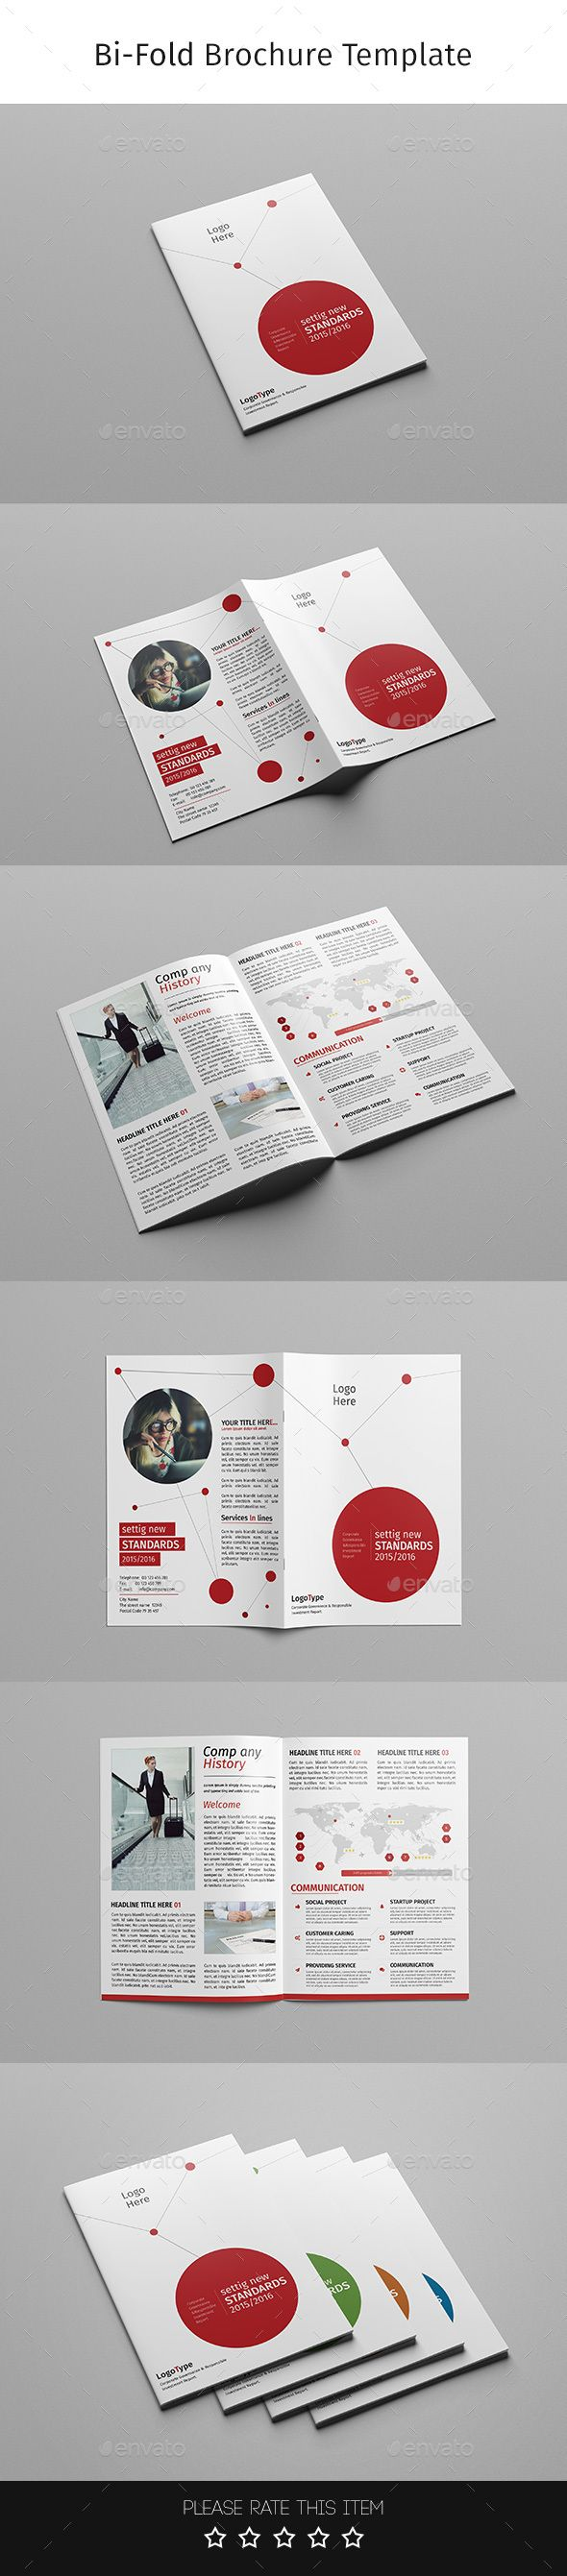 Corporate Bi-fold Brochure Template PSD #design Download: http://graphicriver.net/item/corporate-bifold-brochuremultipurpose-07/14405603?ref=ksioks